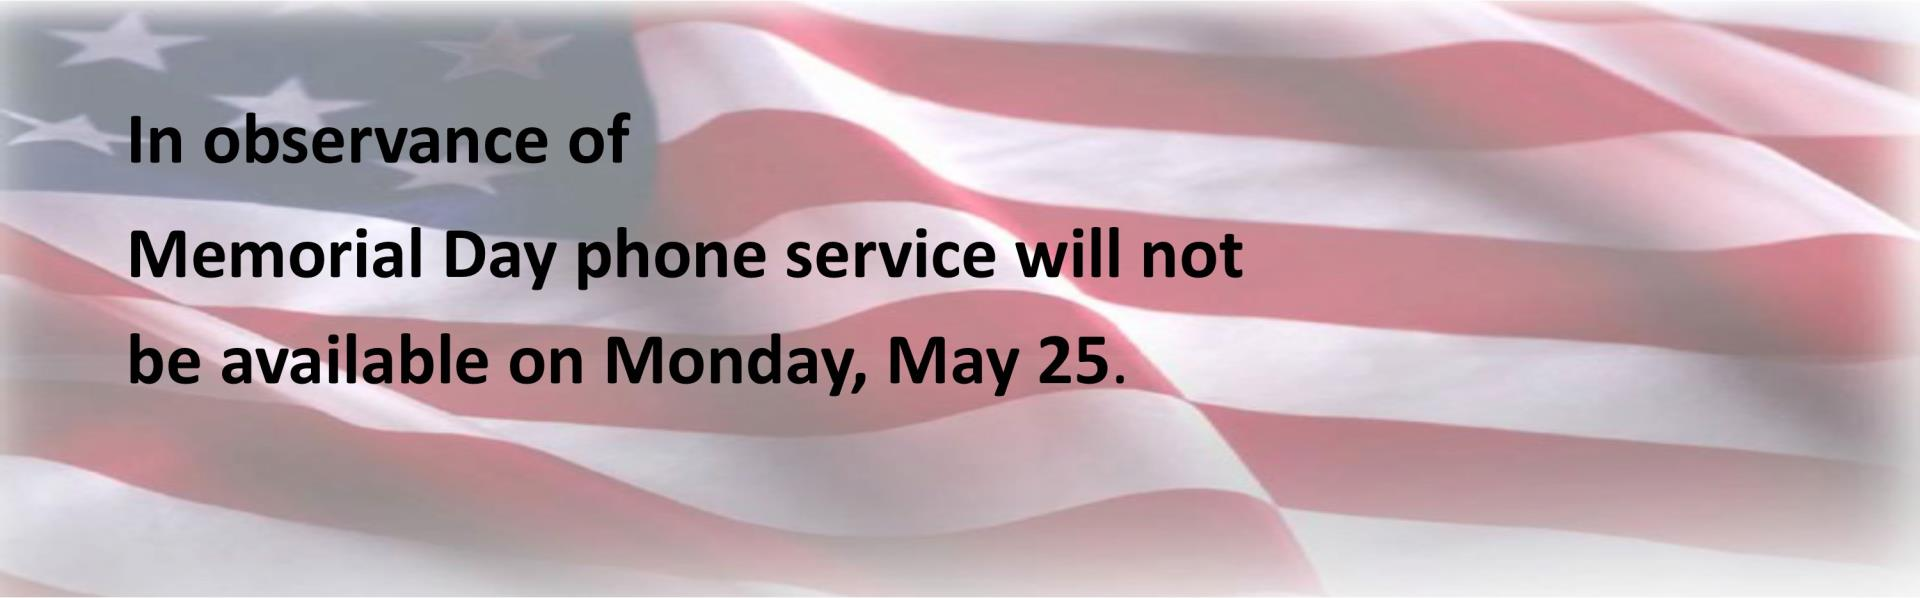 in observance of Memorial day phone service will not be available Monday, May 25